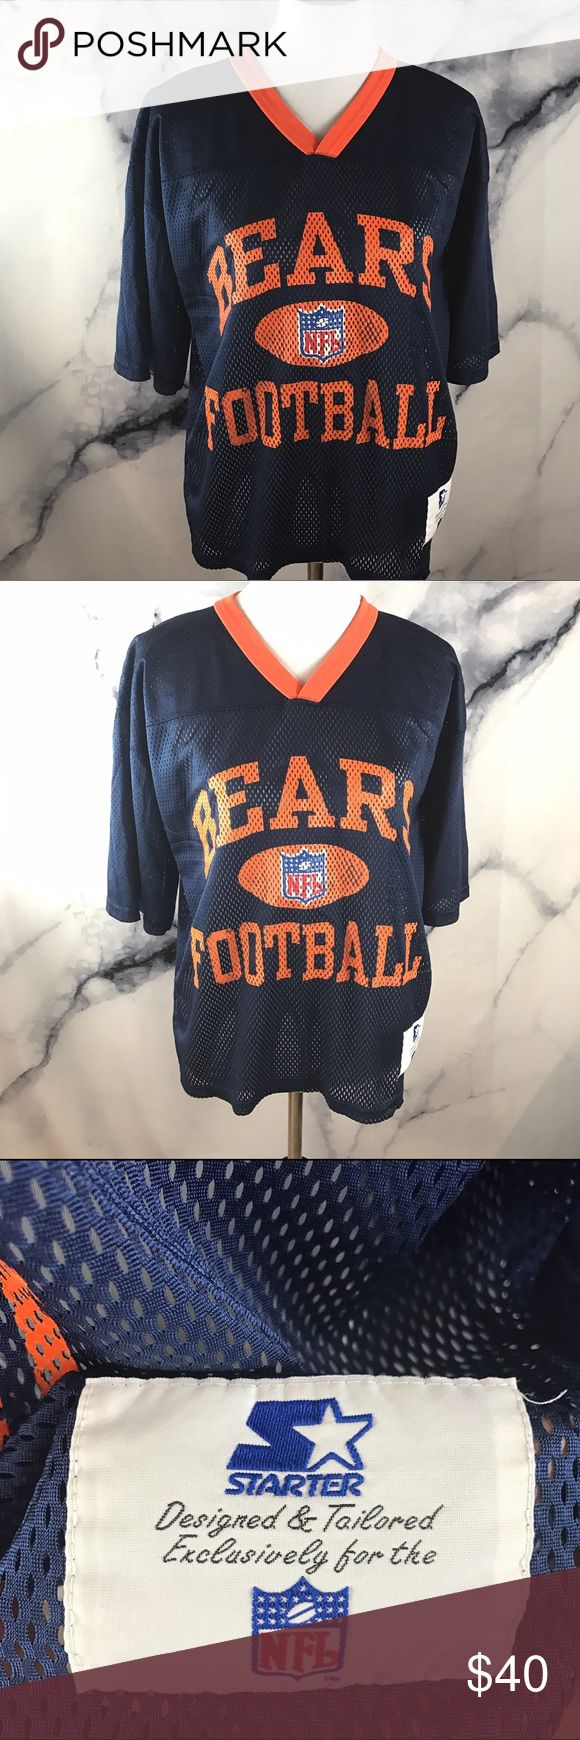 Starter VTG 90's Bears Jersey Excellent vintage condition!! M/46 on tag. Fits like a Men's S 🖤THANK YOU for supporting the dream of business ownership of 2 BFFs! 🖤DON'T PASS THIS UP! Make us an offer! 🖤We ship daily M-Sat, so youll get it on time! 🖤no price discussion in comments please🖤 use offer button 🖤reasonable offers accepted 🖤low offers countered🖤offers below 50% of asking price are auto declined🖤 starter Shirts